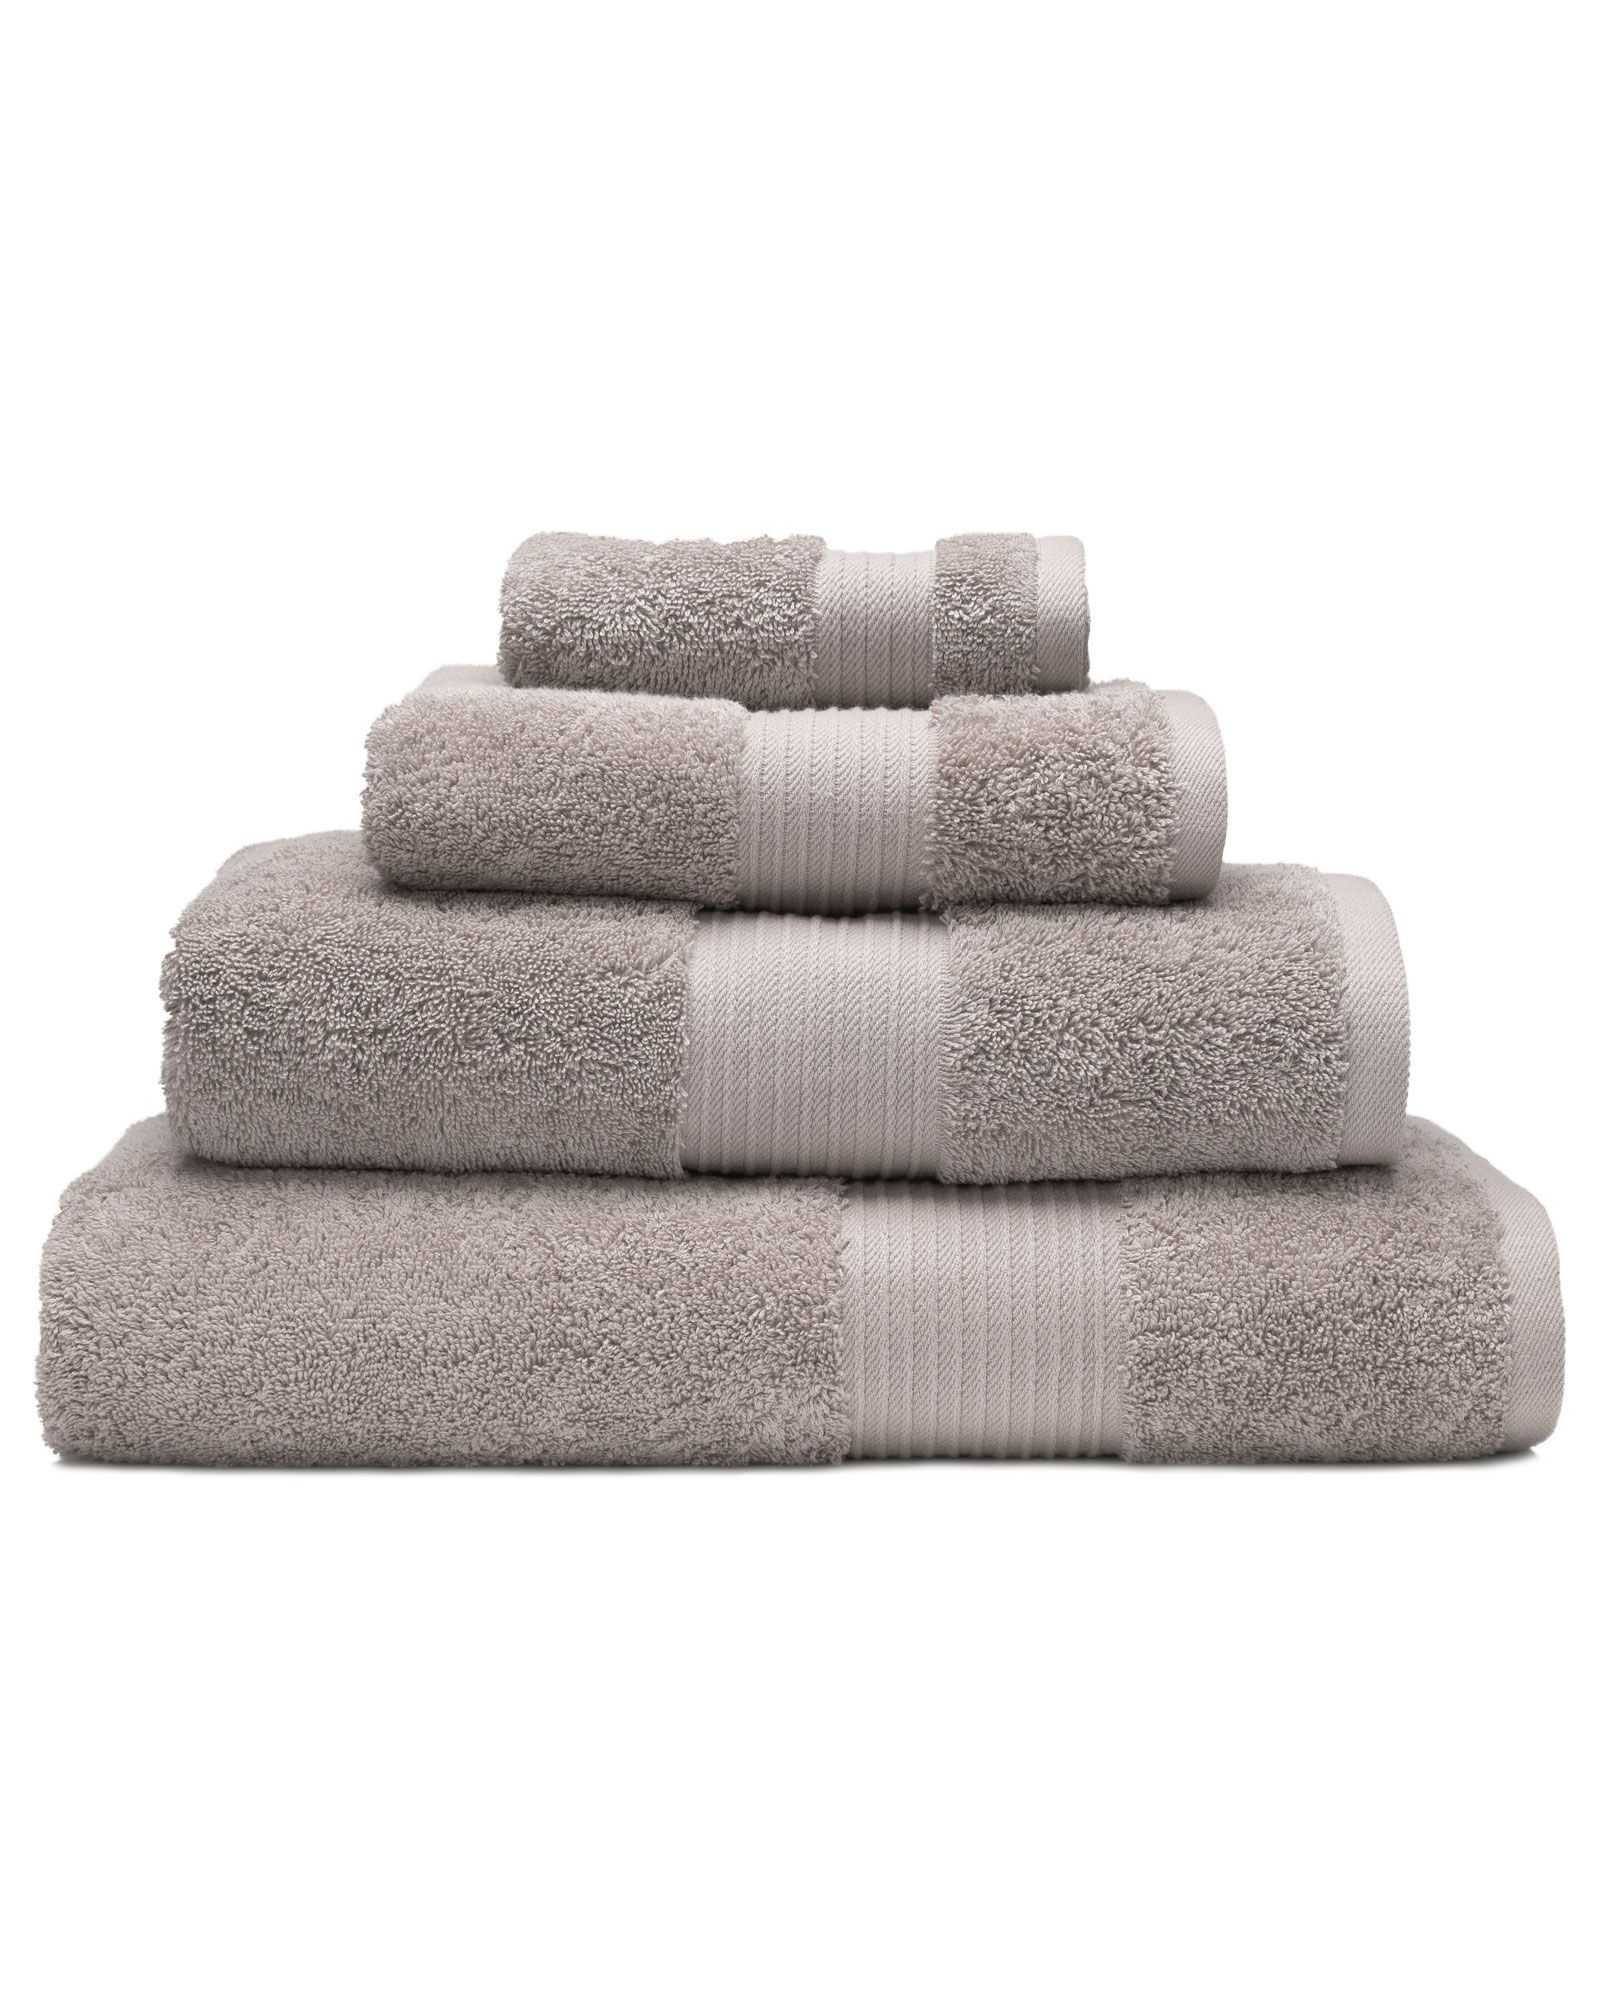 Pima 650g Face Cloth 2 Pack Towel Set Grey Bath Towels Turkish